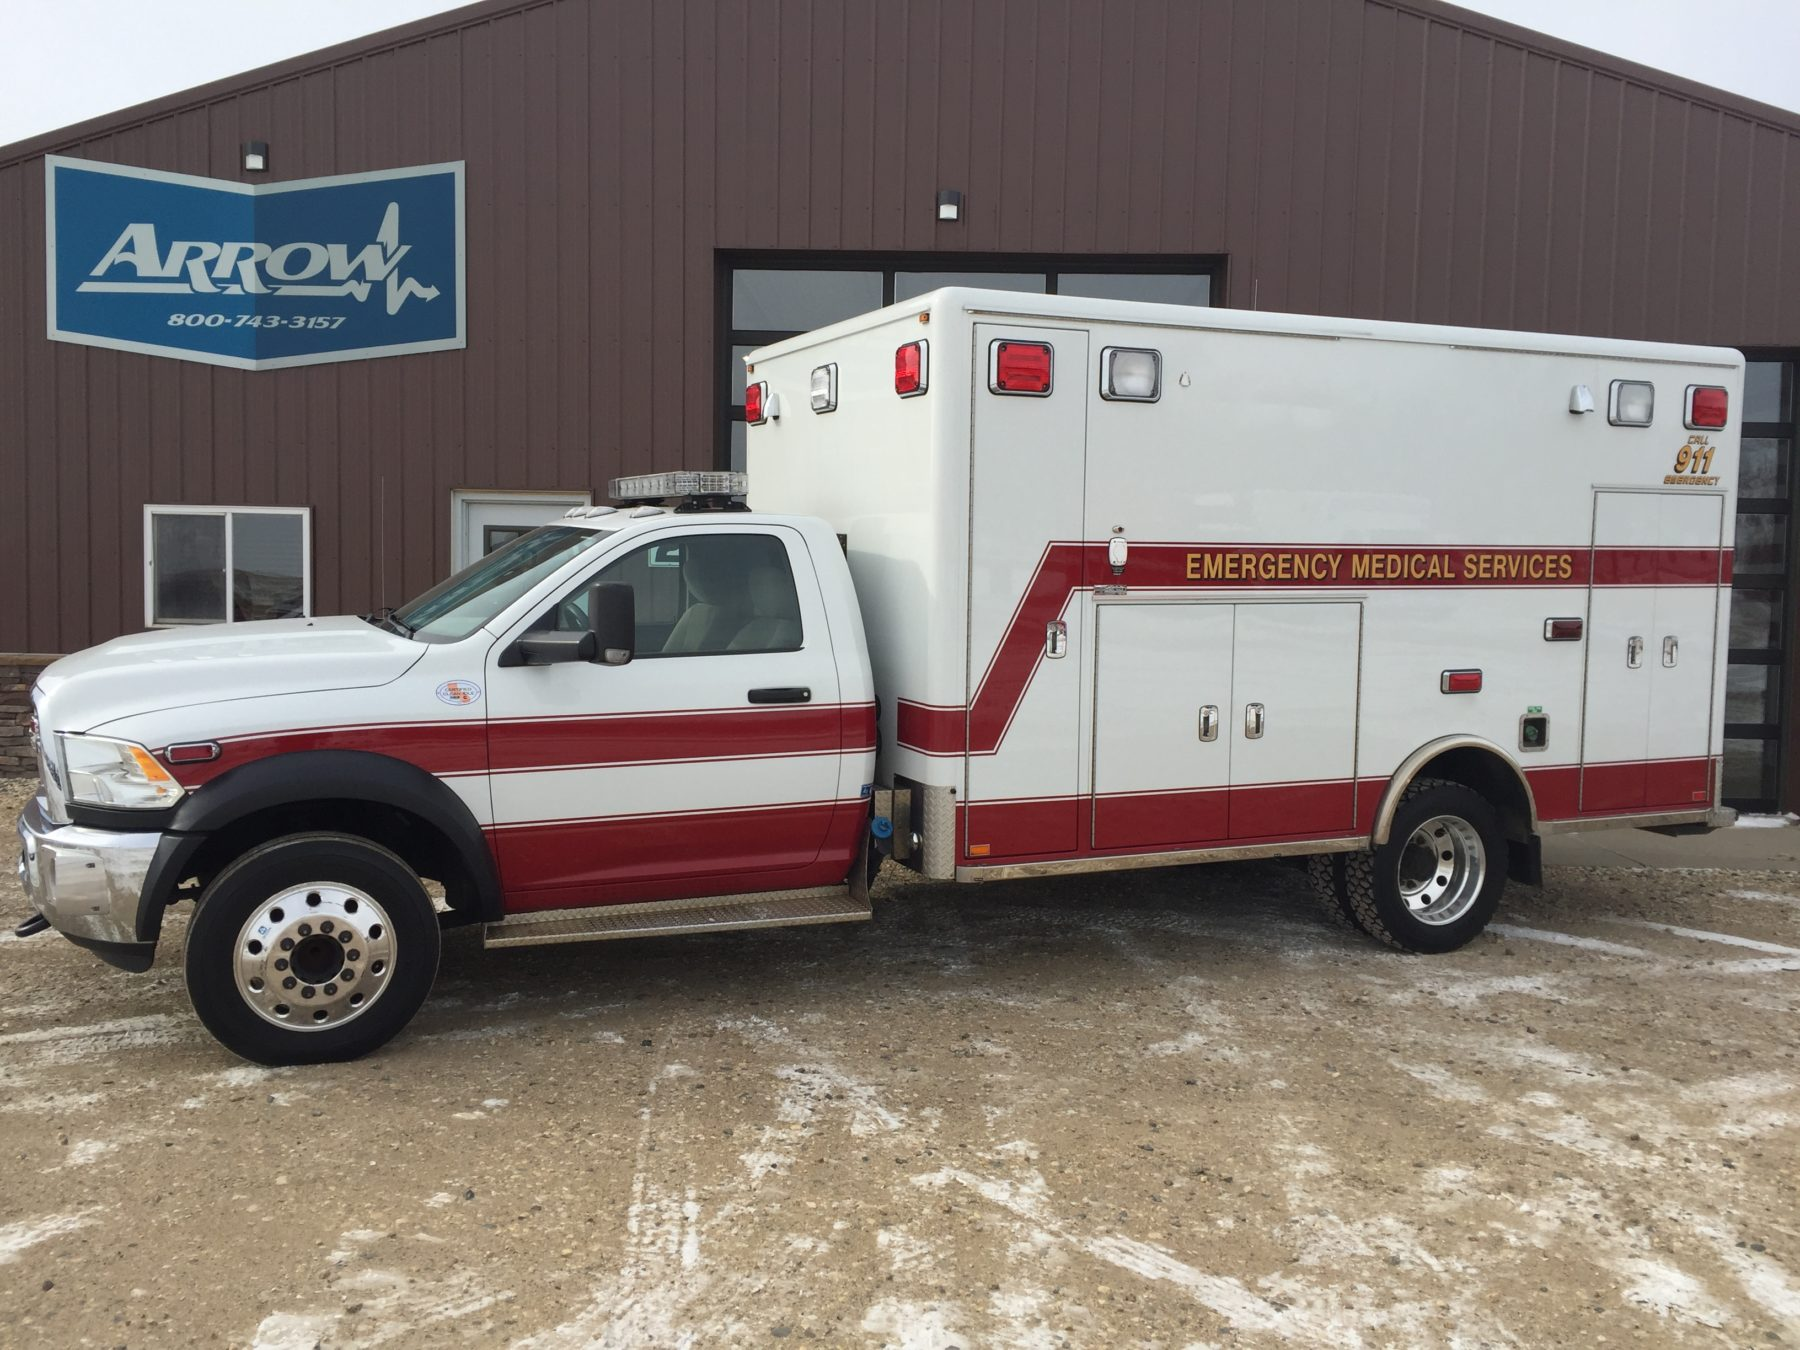 2012 Dodge 4500 Heavy Duty Ambulance For Sale – Picture 1